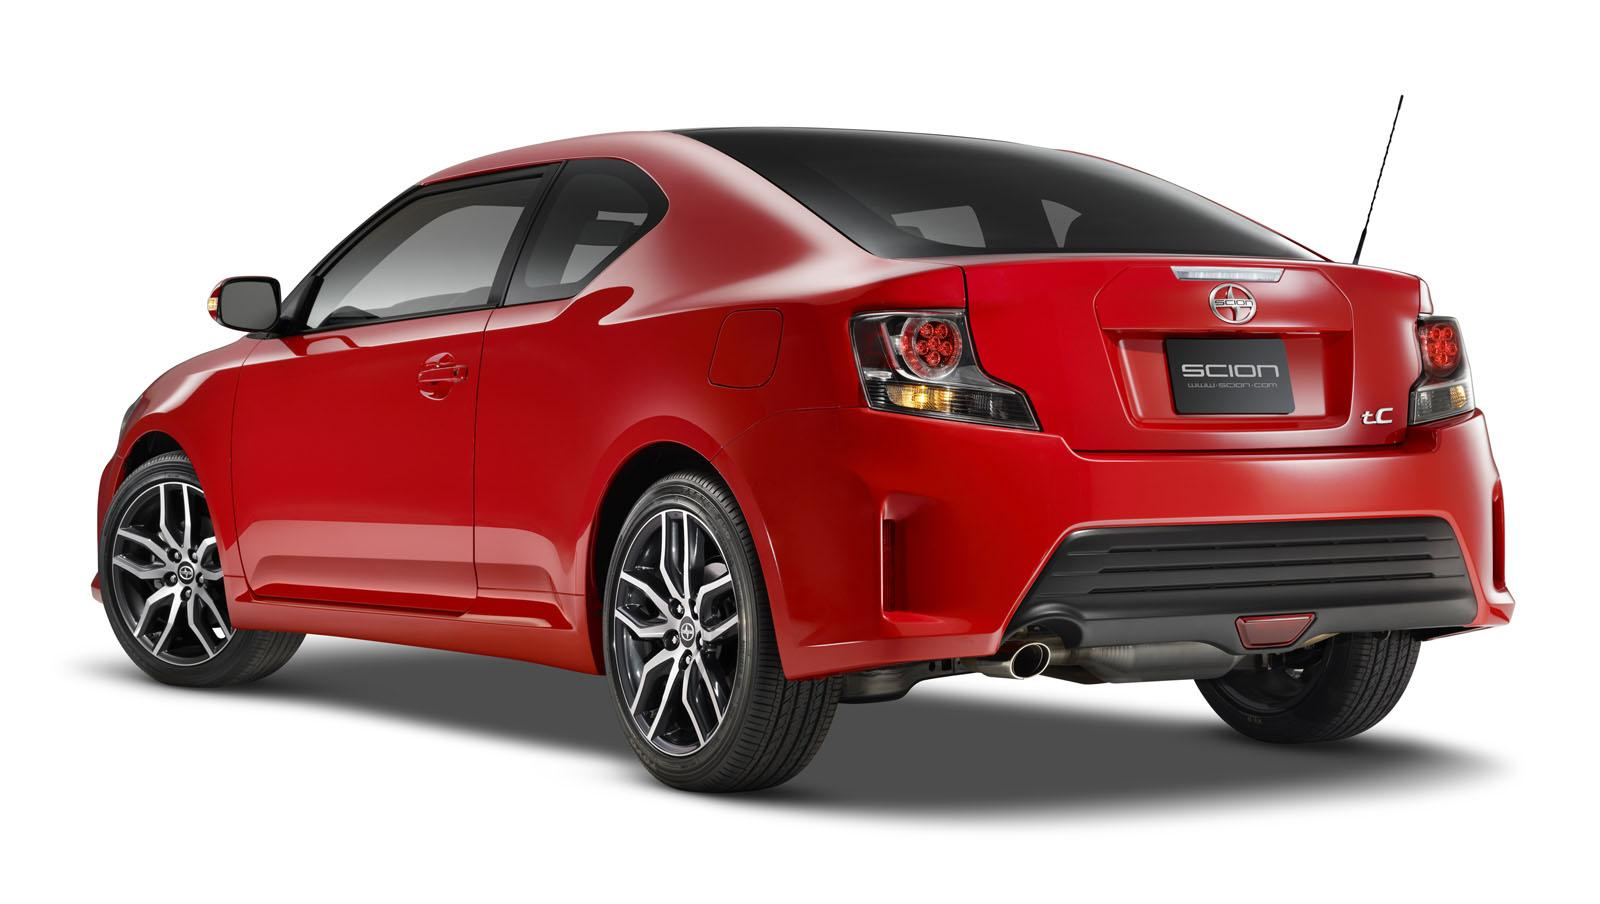 The New 2014 Scion Tc Looks Like The Fr S Video